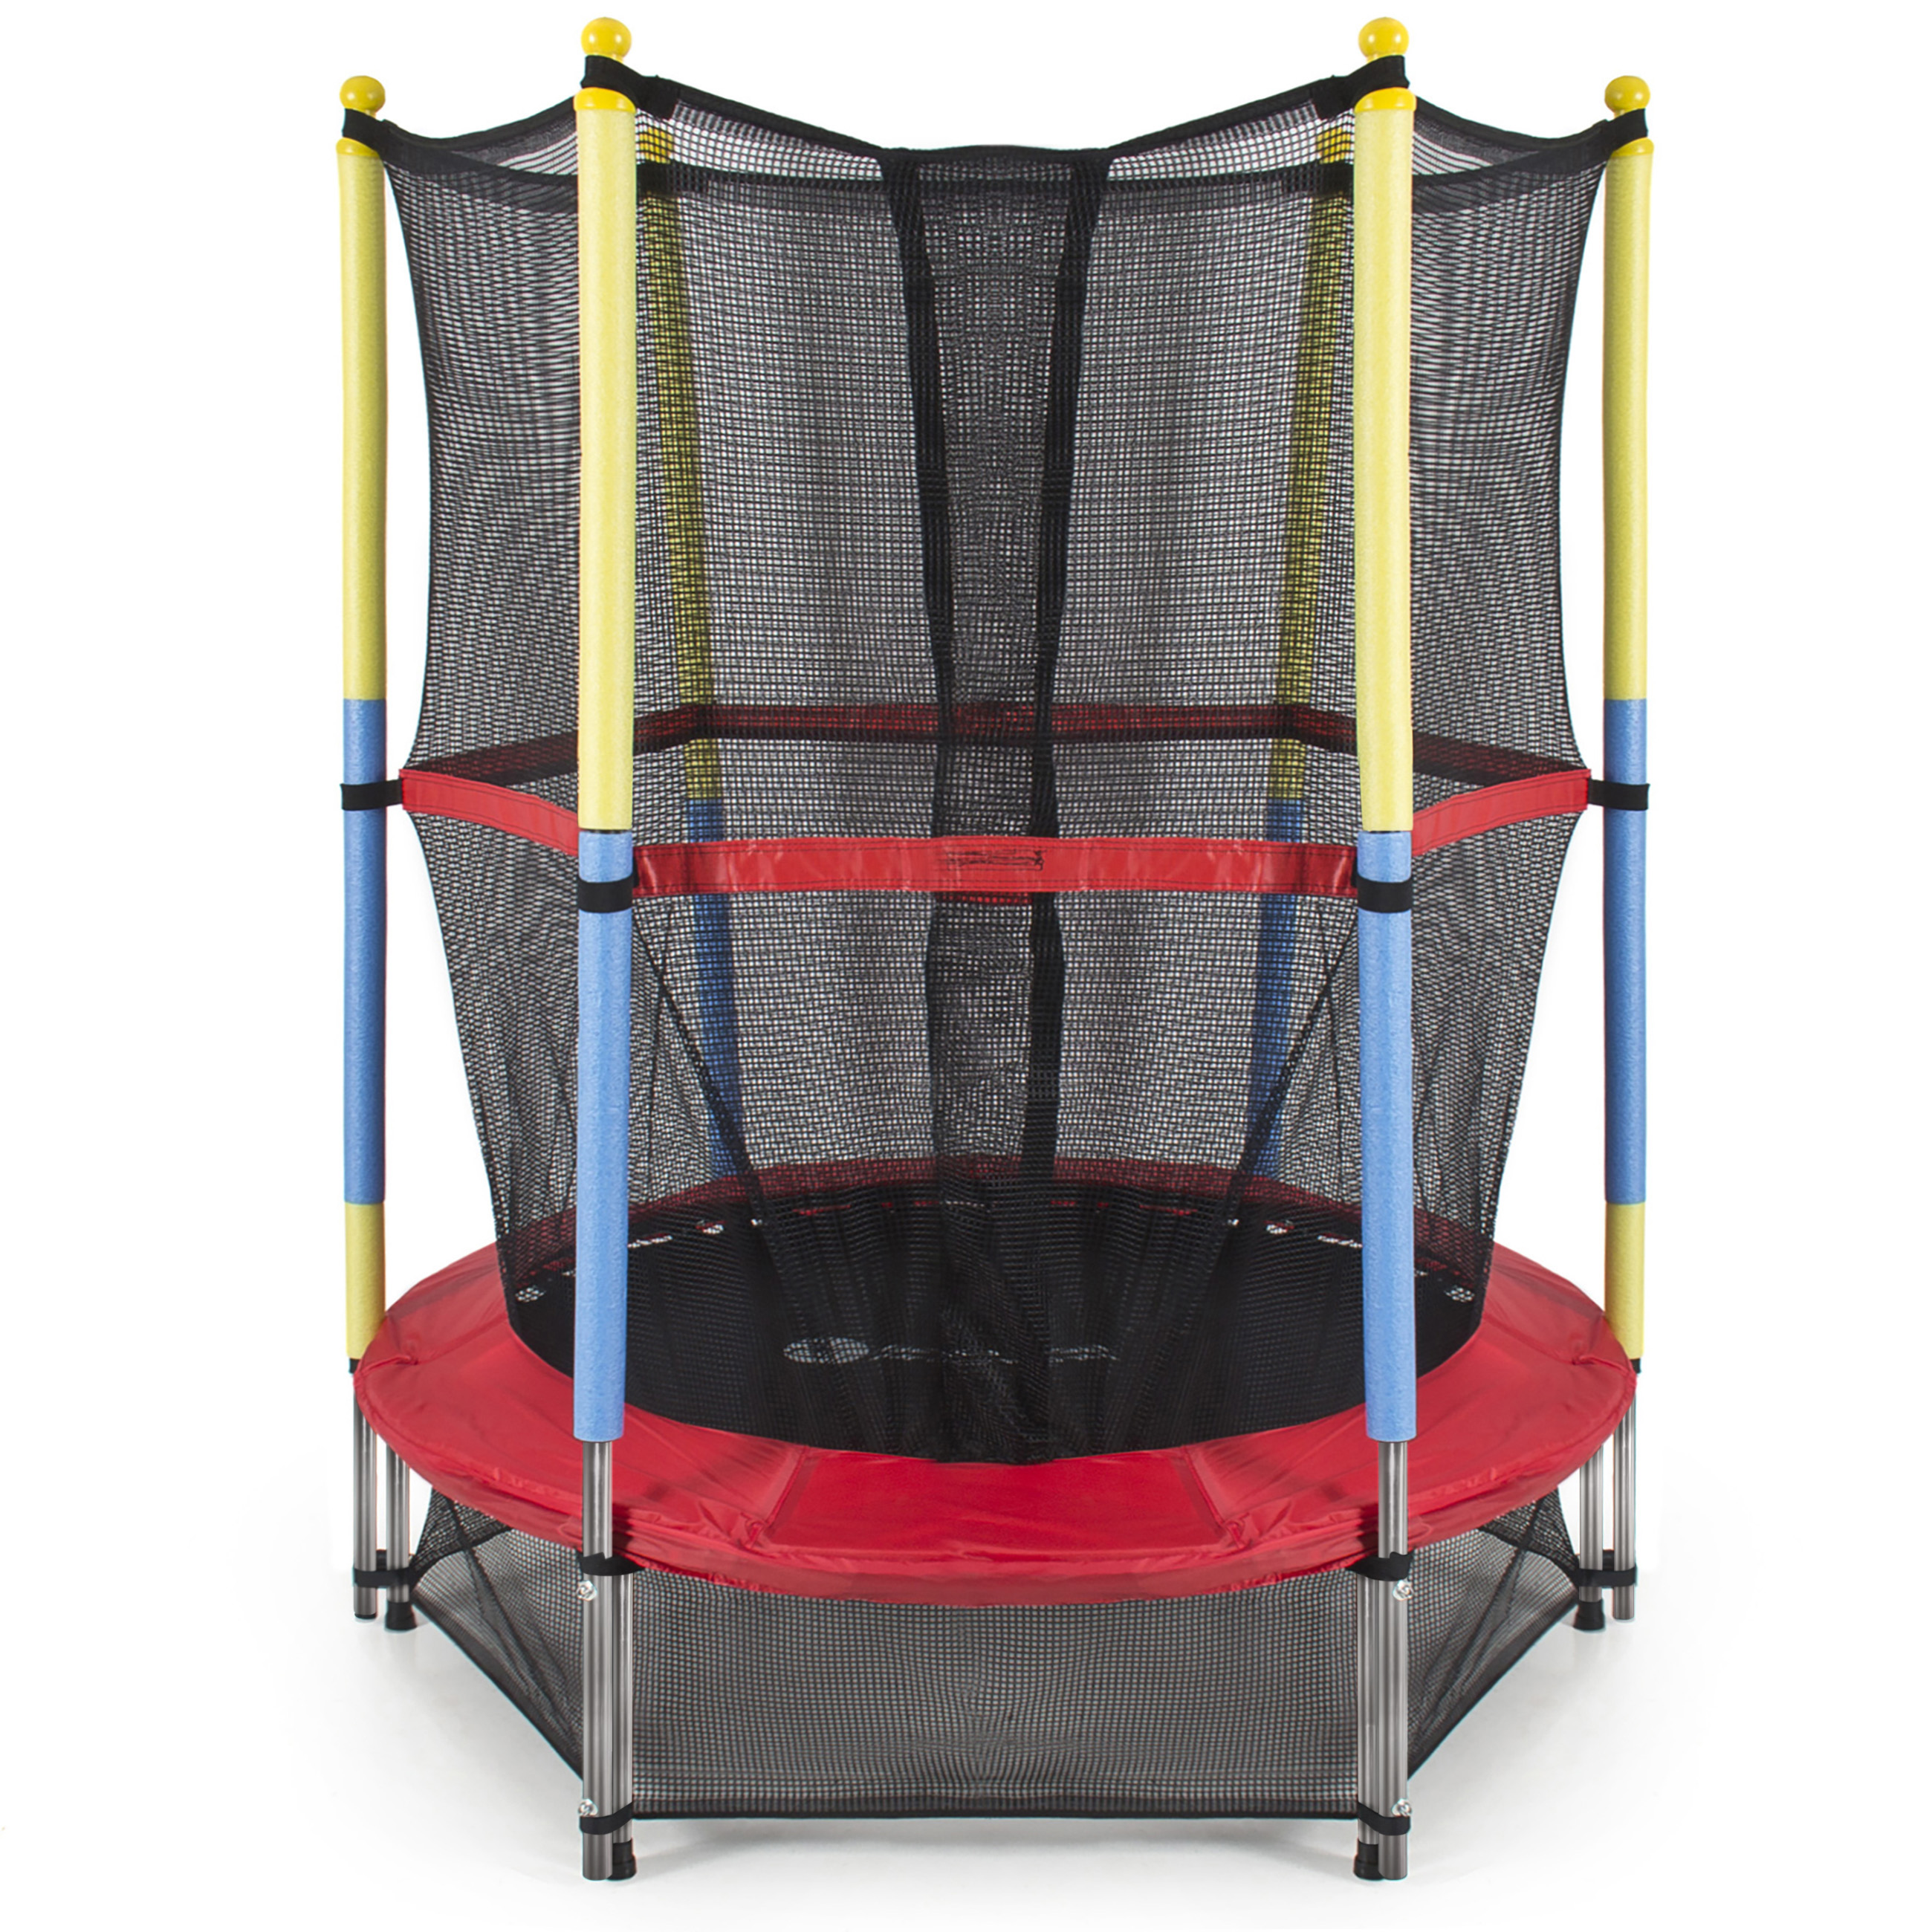 Best Choice Products 55-Inch Mini Trampoline, with Safety Enclosure, Red by